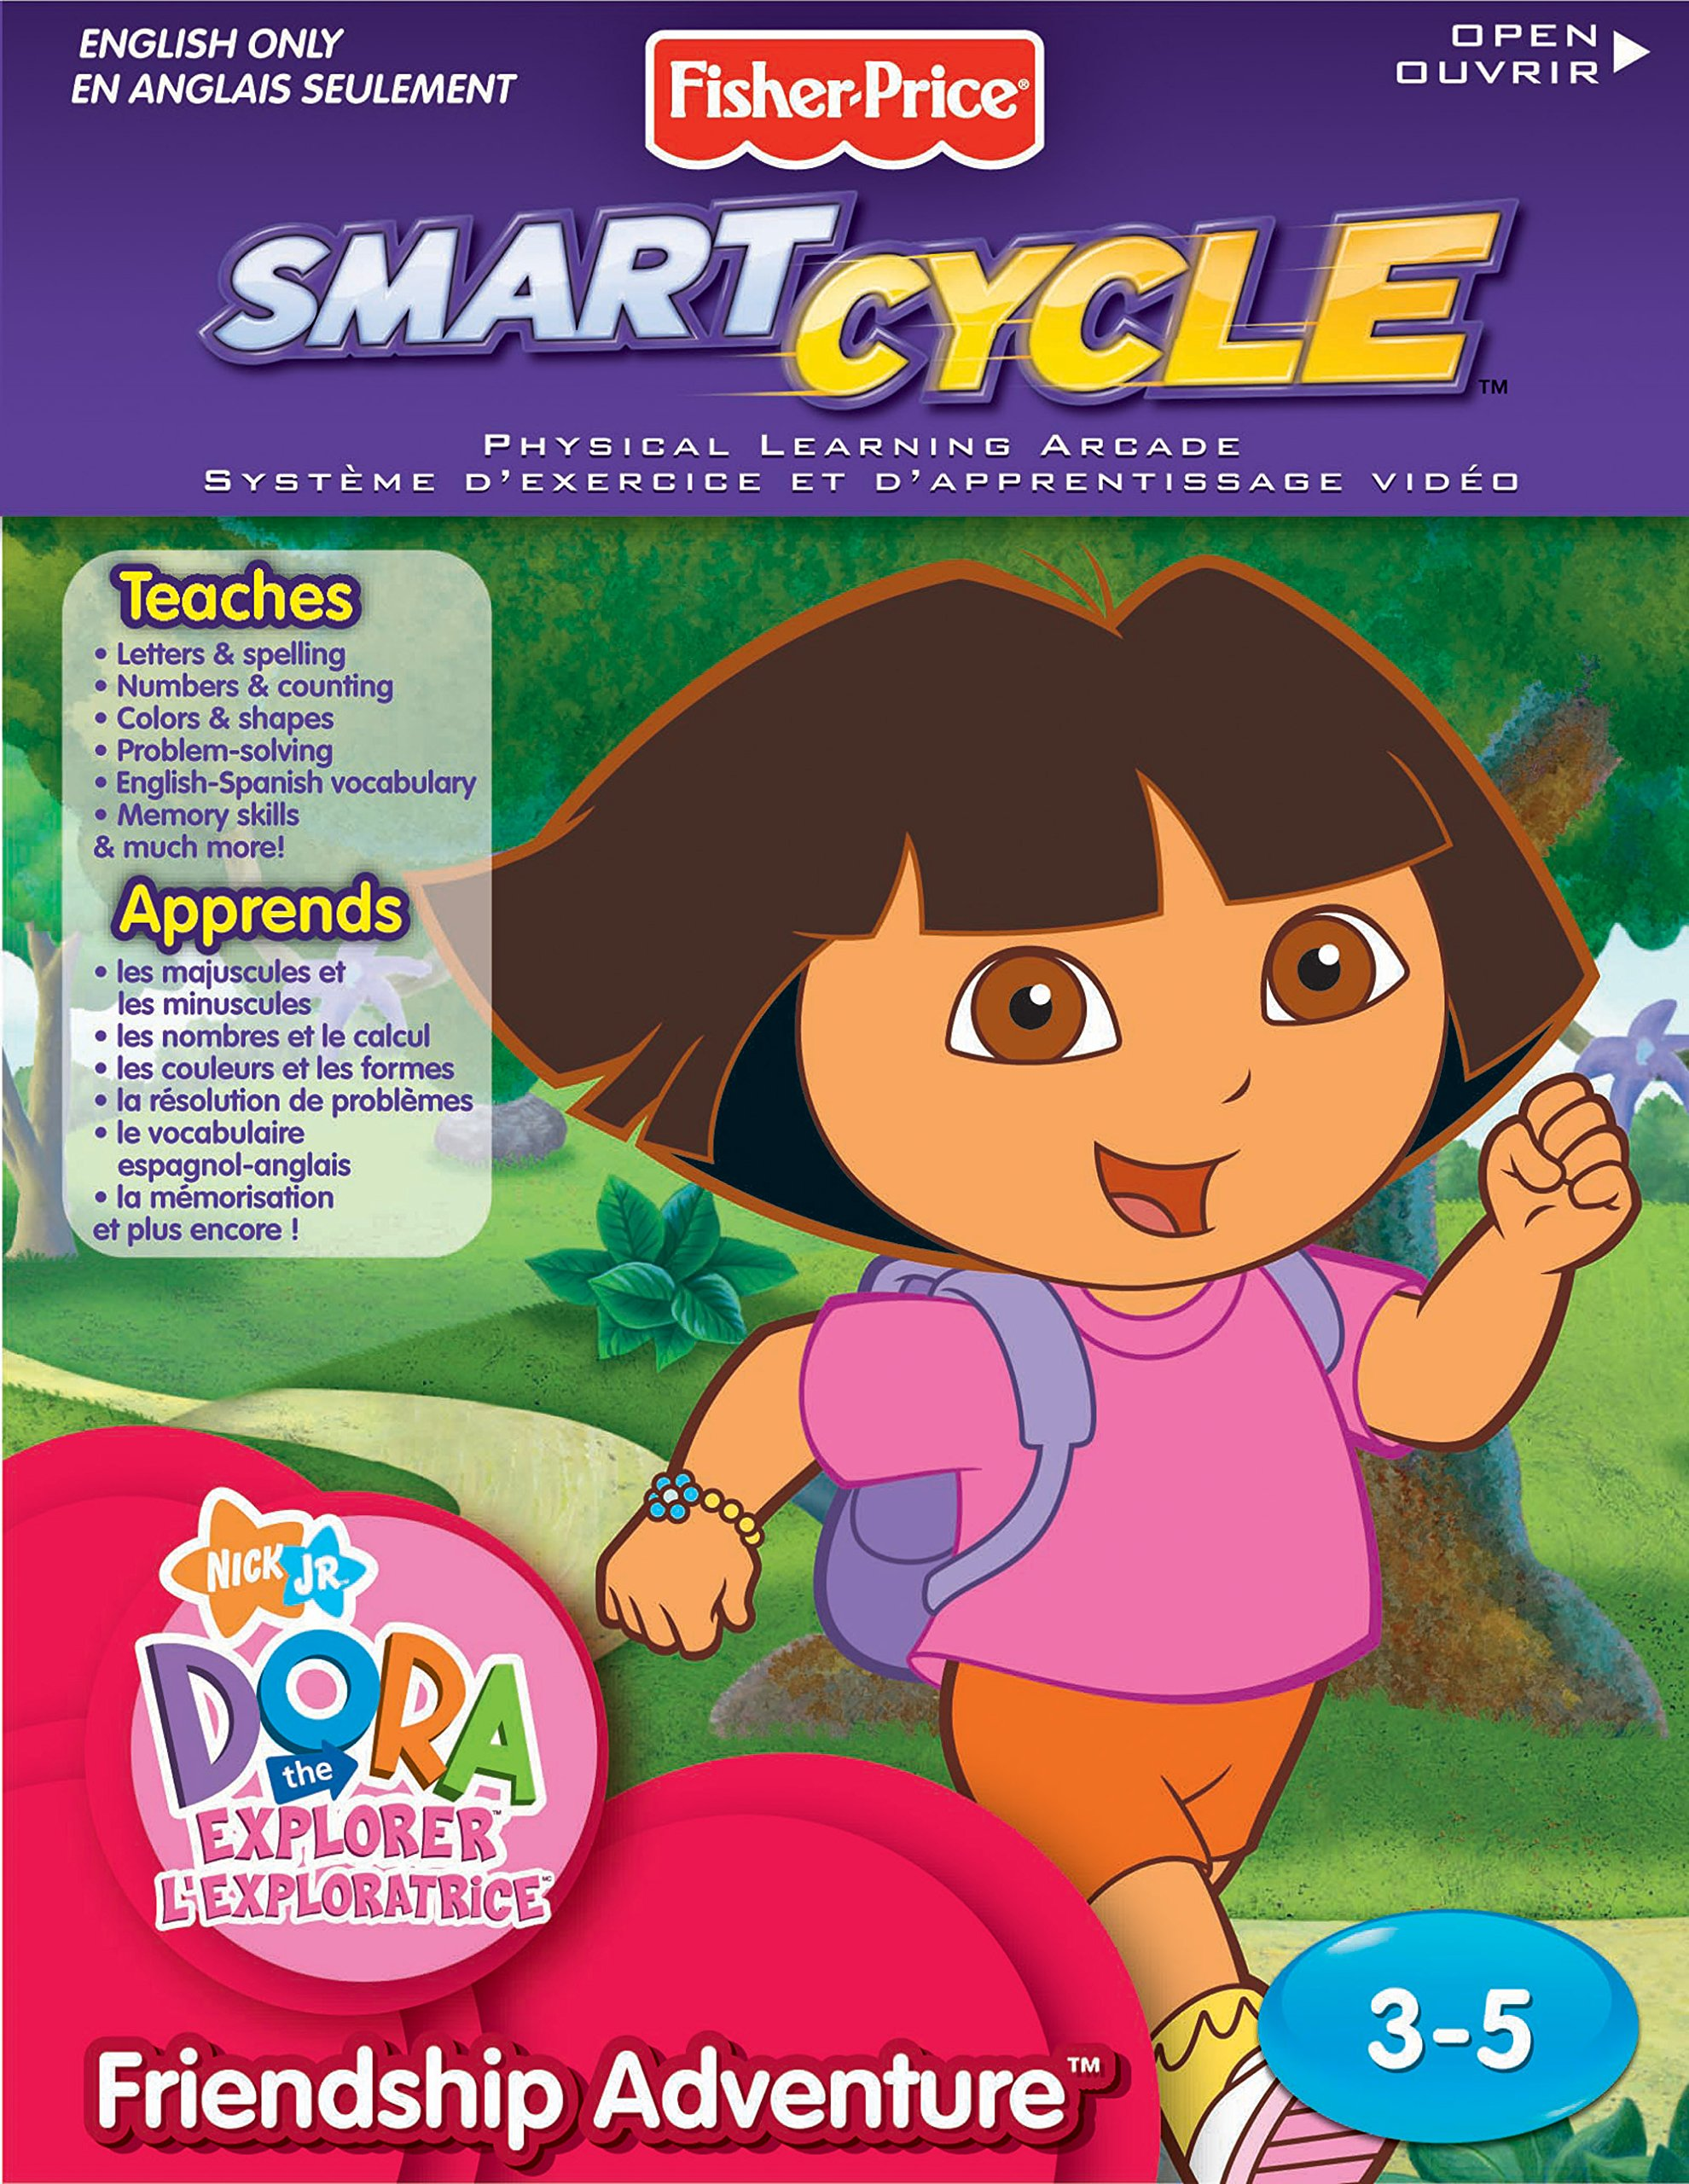 Fisher-Price Smart Cycle [Old Version] Dora Friendship Adventures Software Cartridge by Fisher-Price